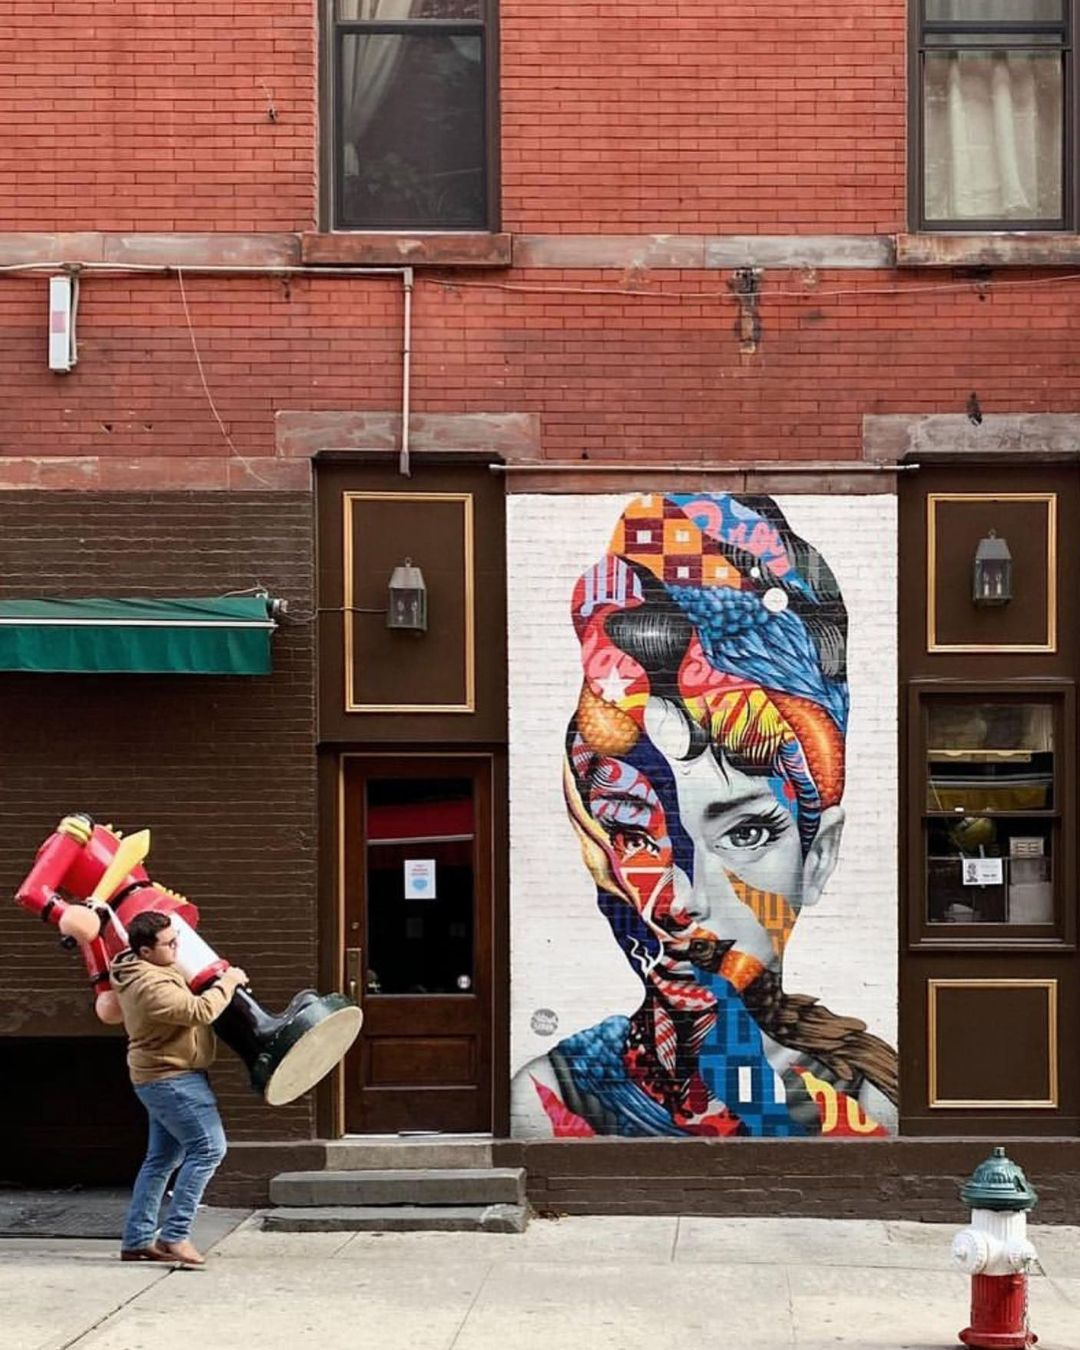 Artwork By Tristan Eaton in New York City